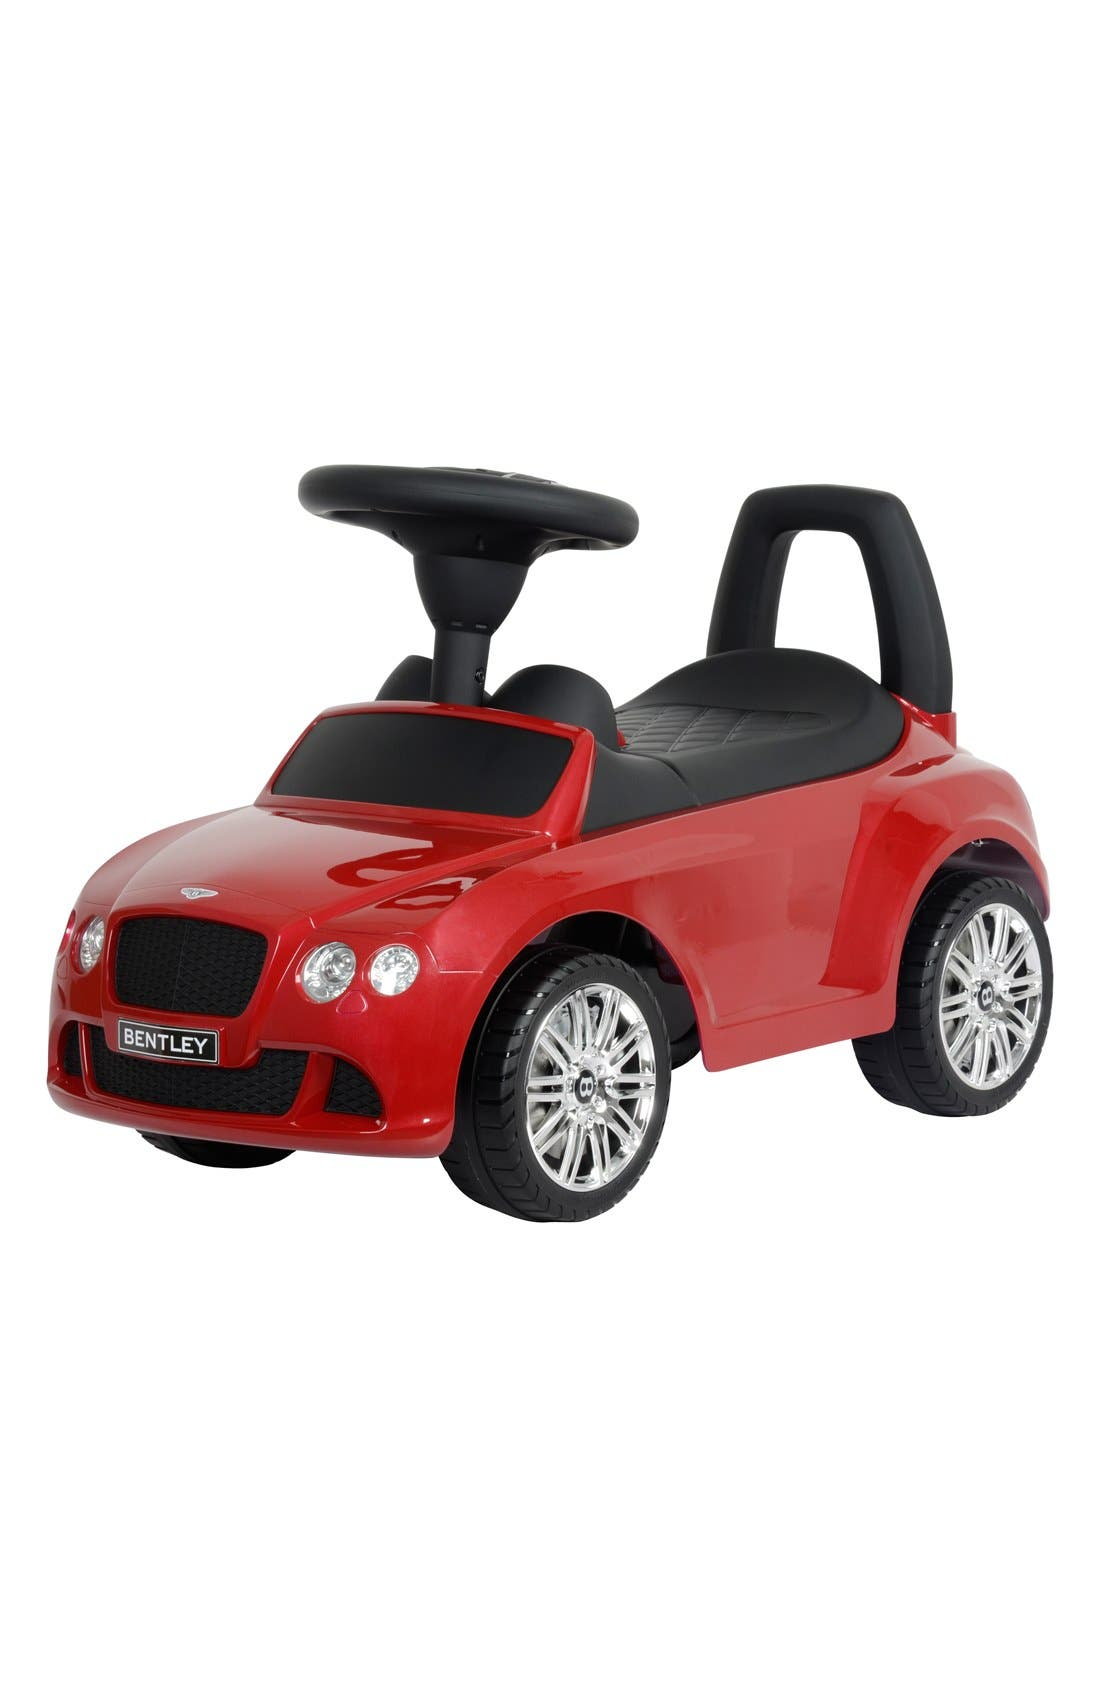 'Bentley' Ride-On Push Car,                         Main,                         color, Red